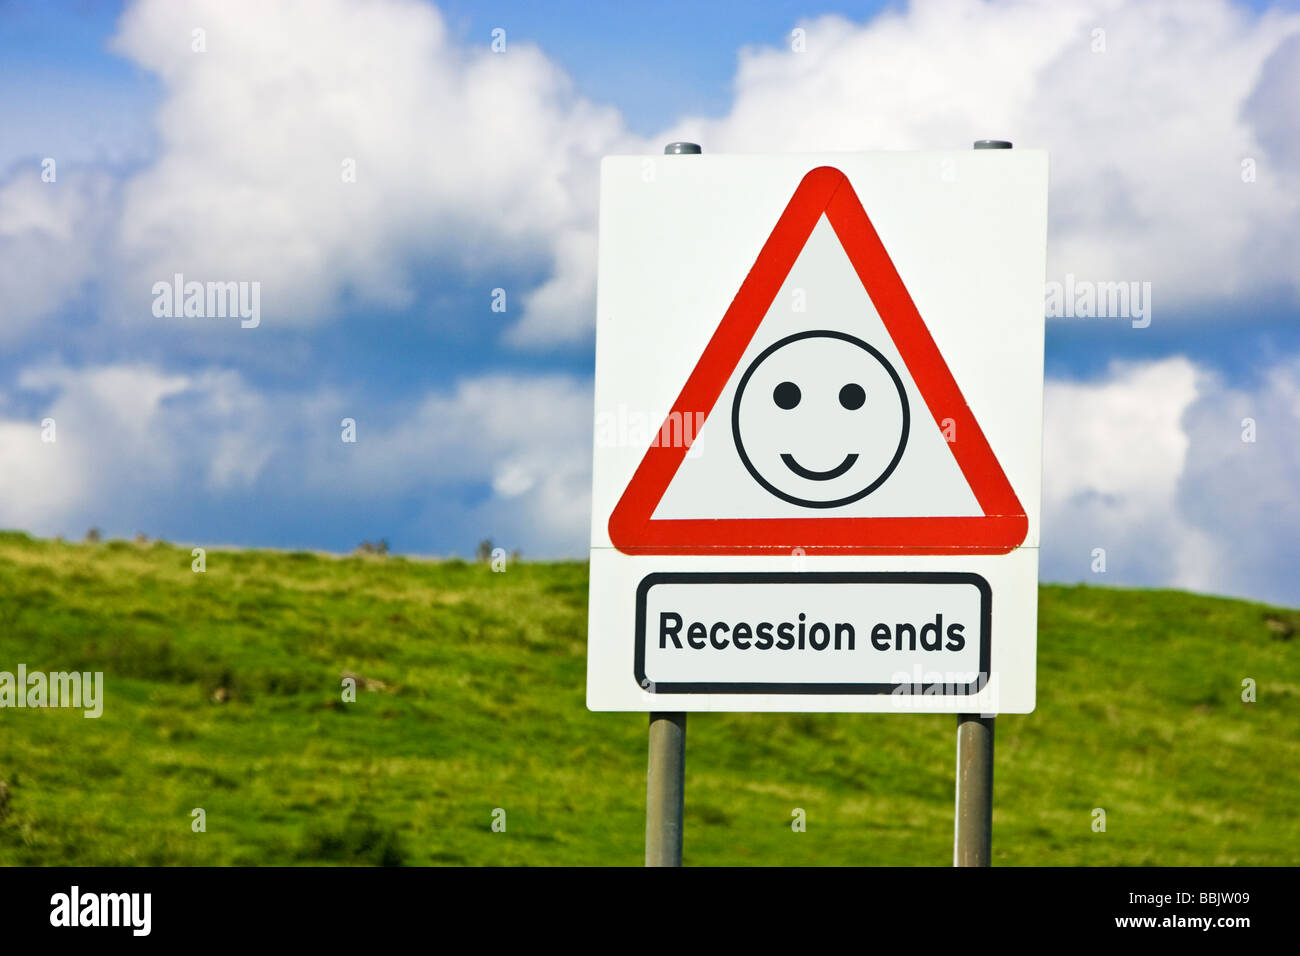 UK concept sign - recession ends England UK - Stock Image